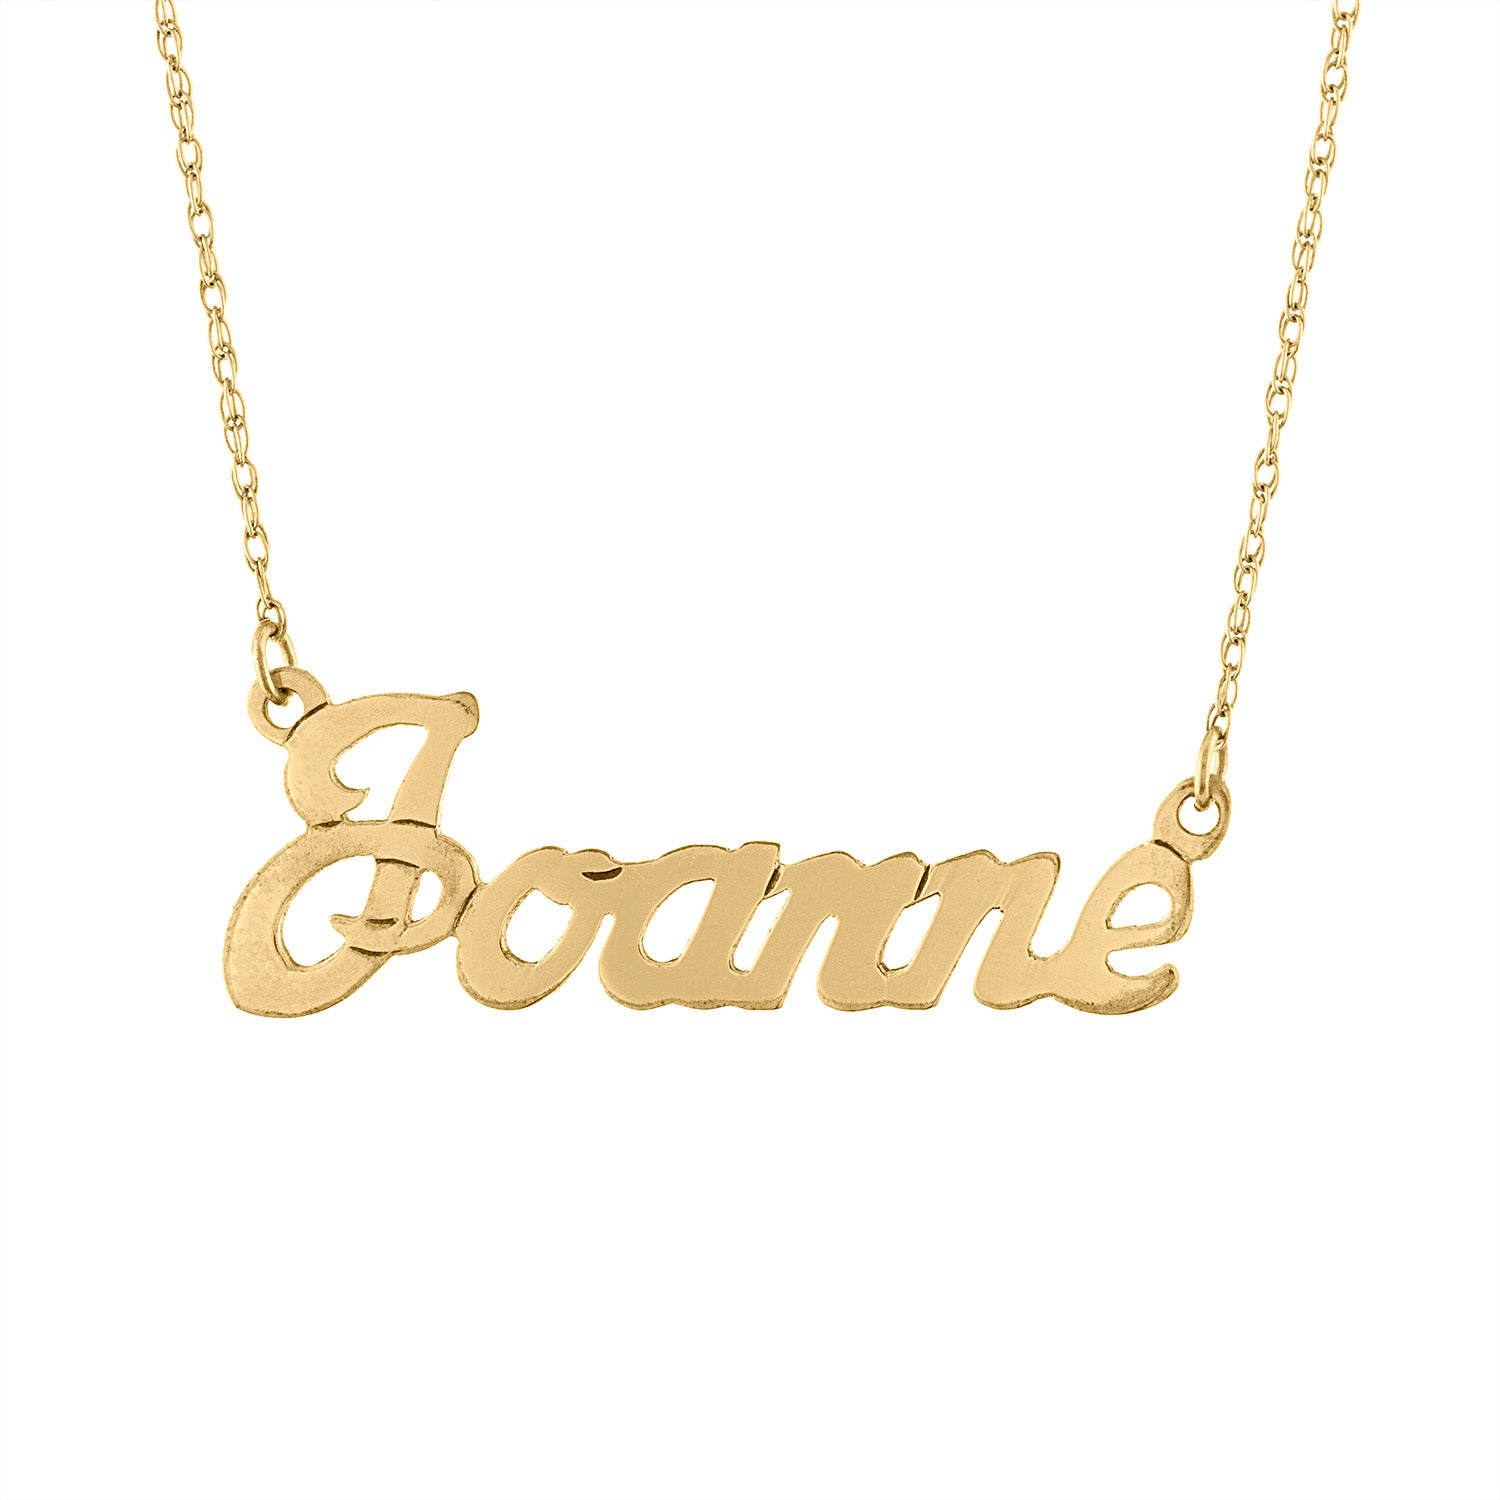 Gold Filled script name rope necklace